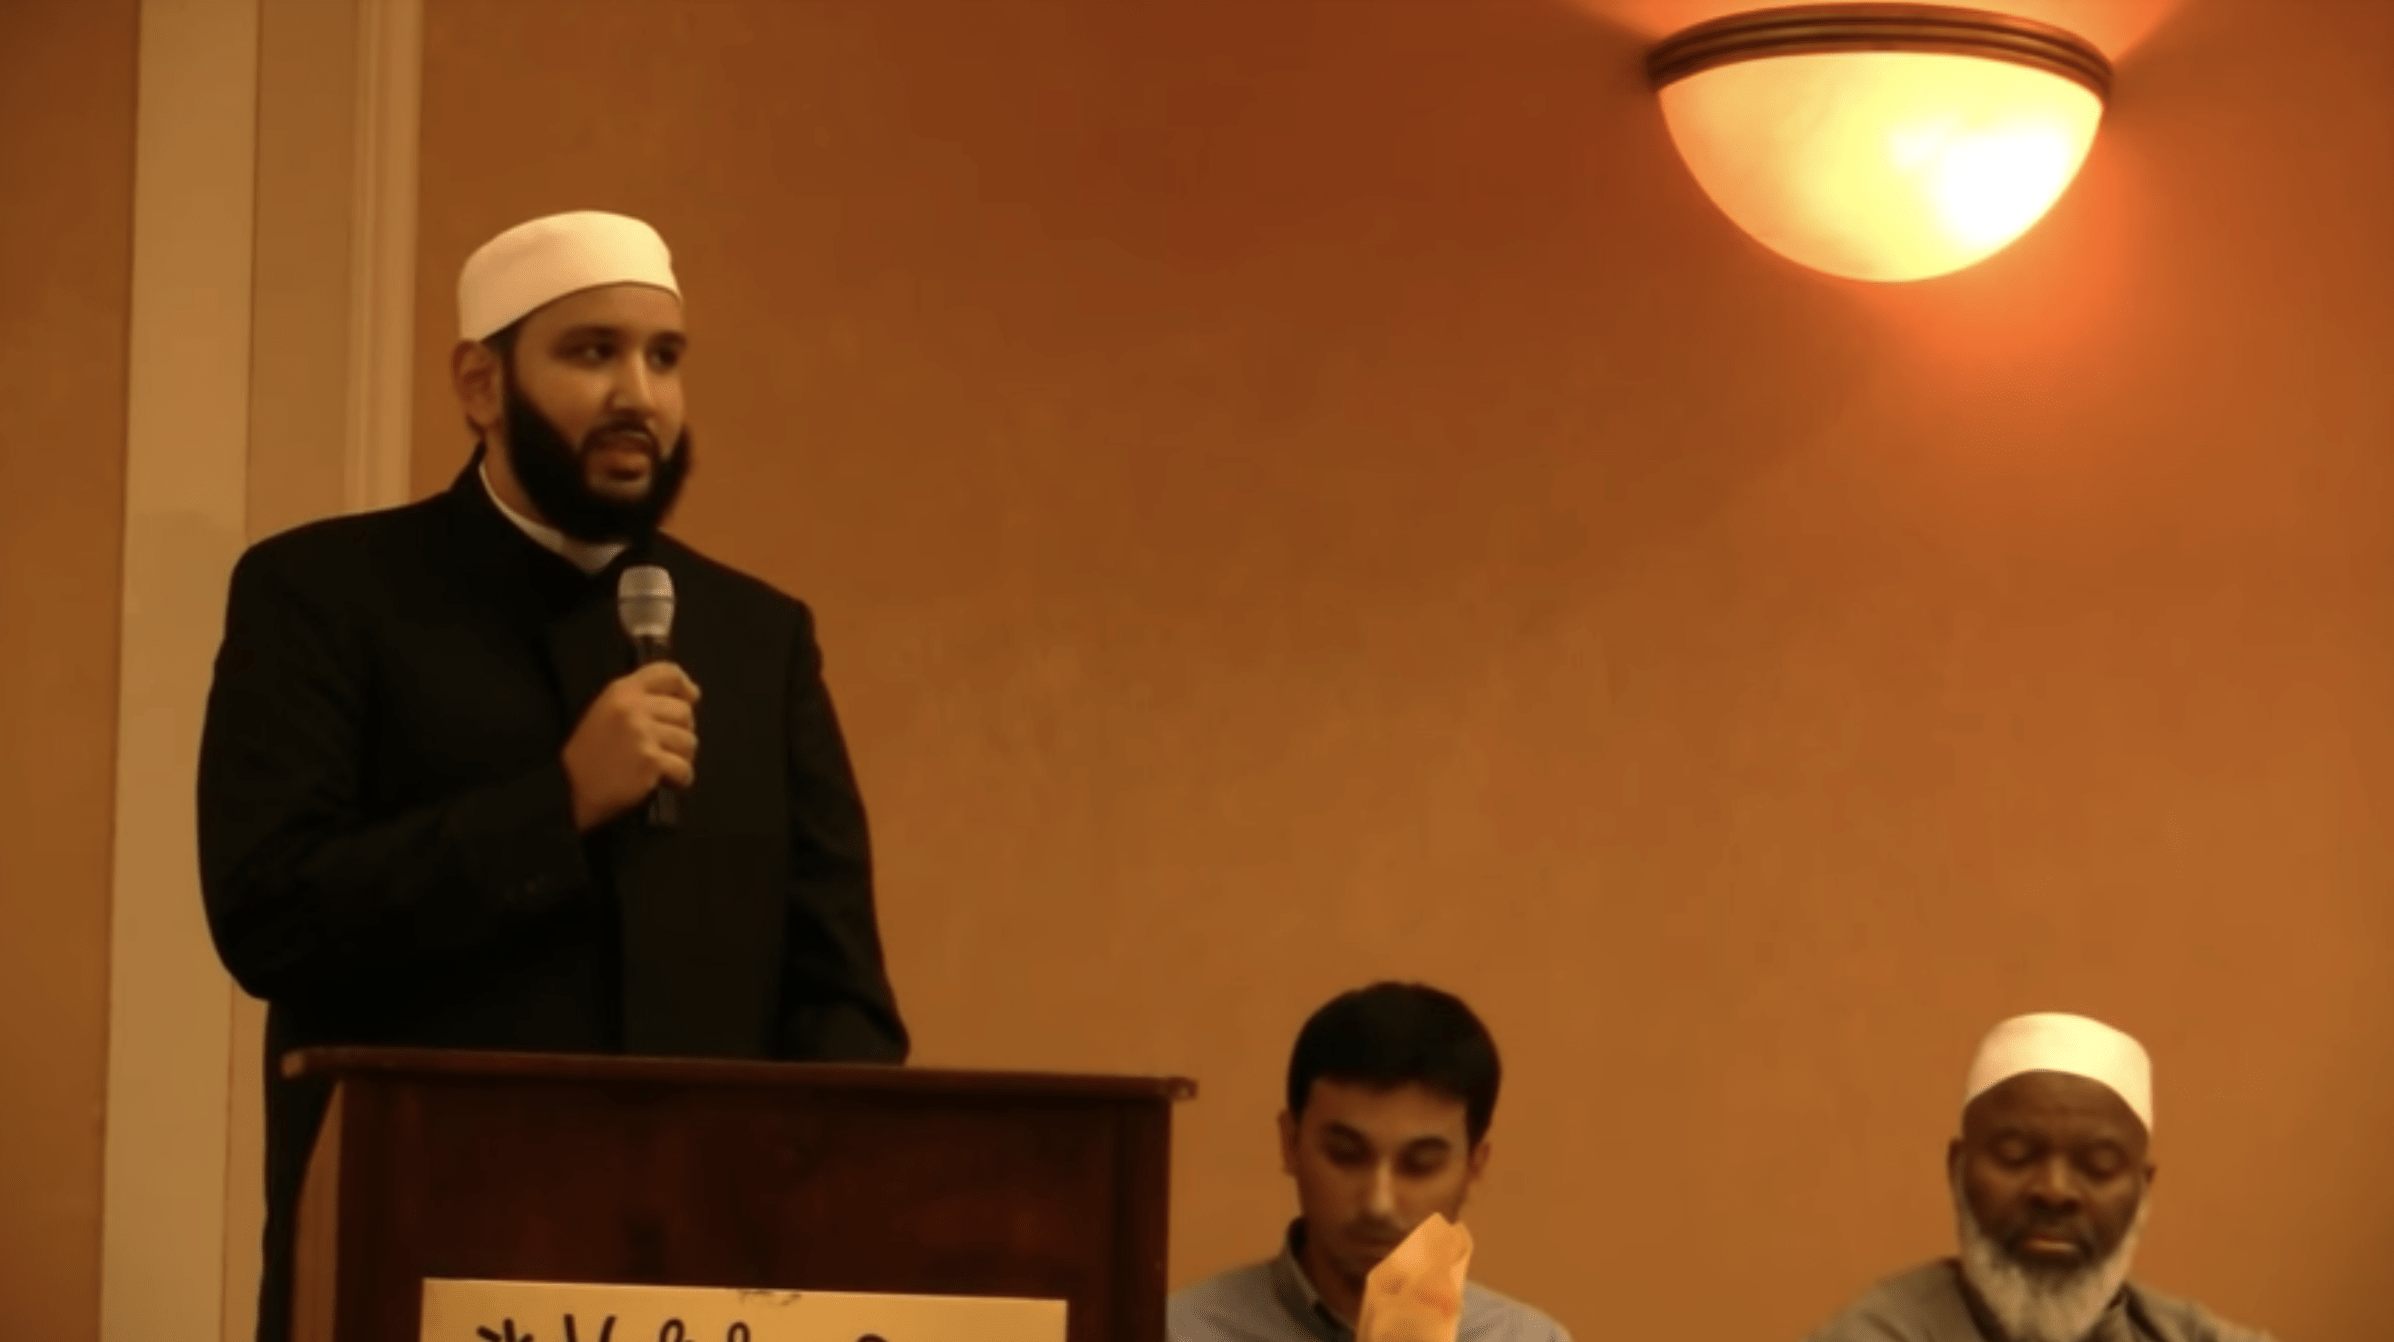 Omar Suleiman – Give History: The Great People of the Past Gave, Now It's Our Turn